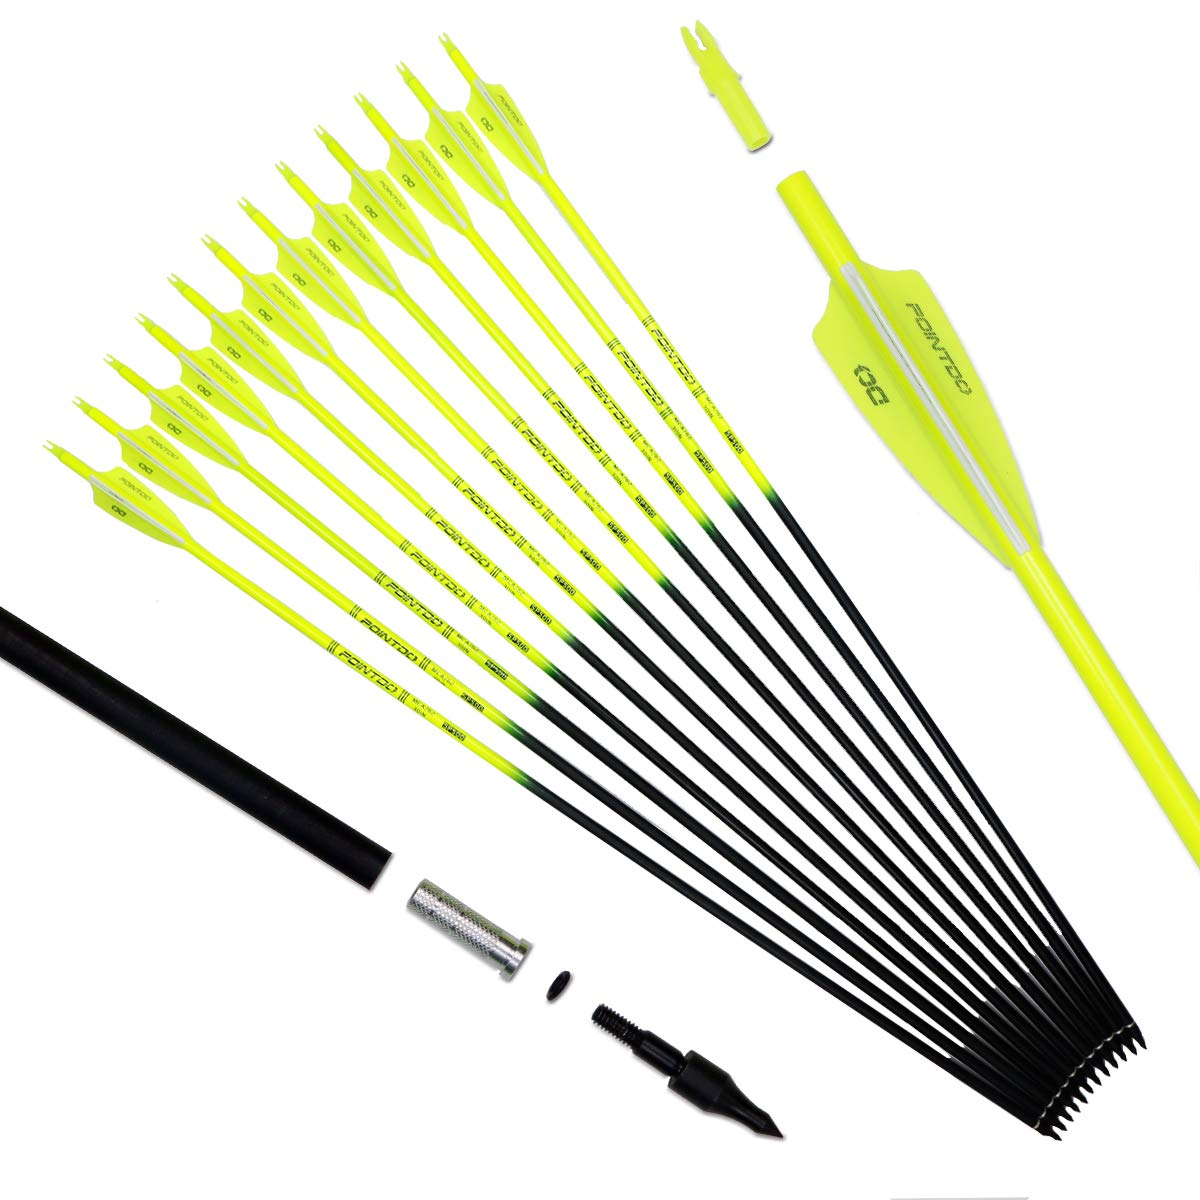 Pointdo 30inch Carbon Arrow Fluorescence Color Targeting and Hunting Practice Arrows for Compound Bow and Recurve Bow with Removable Tips (Fluorescein Yellow)